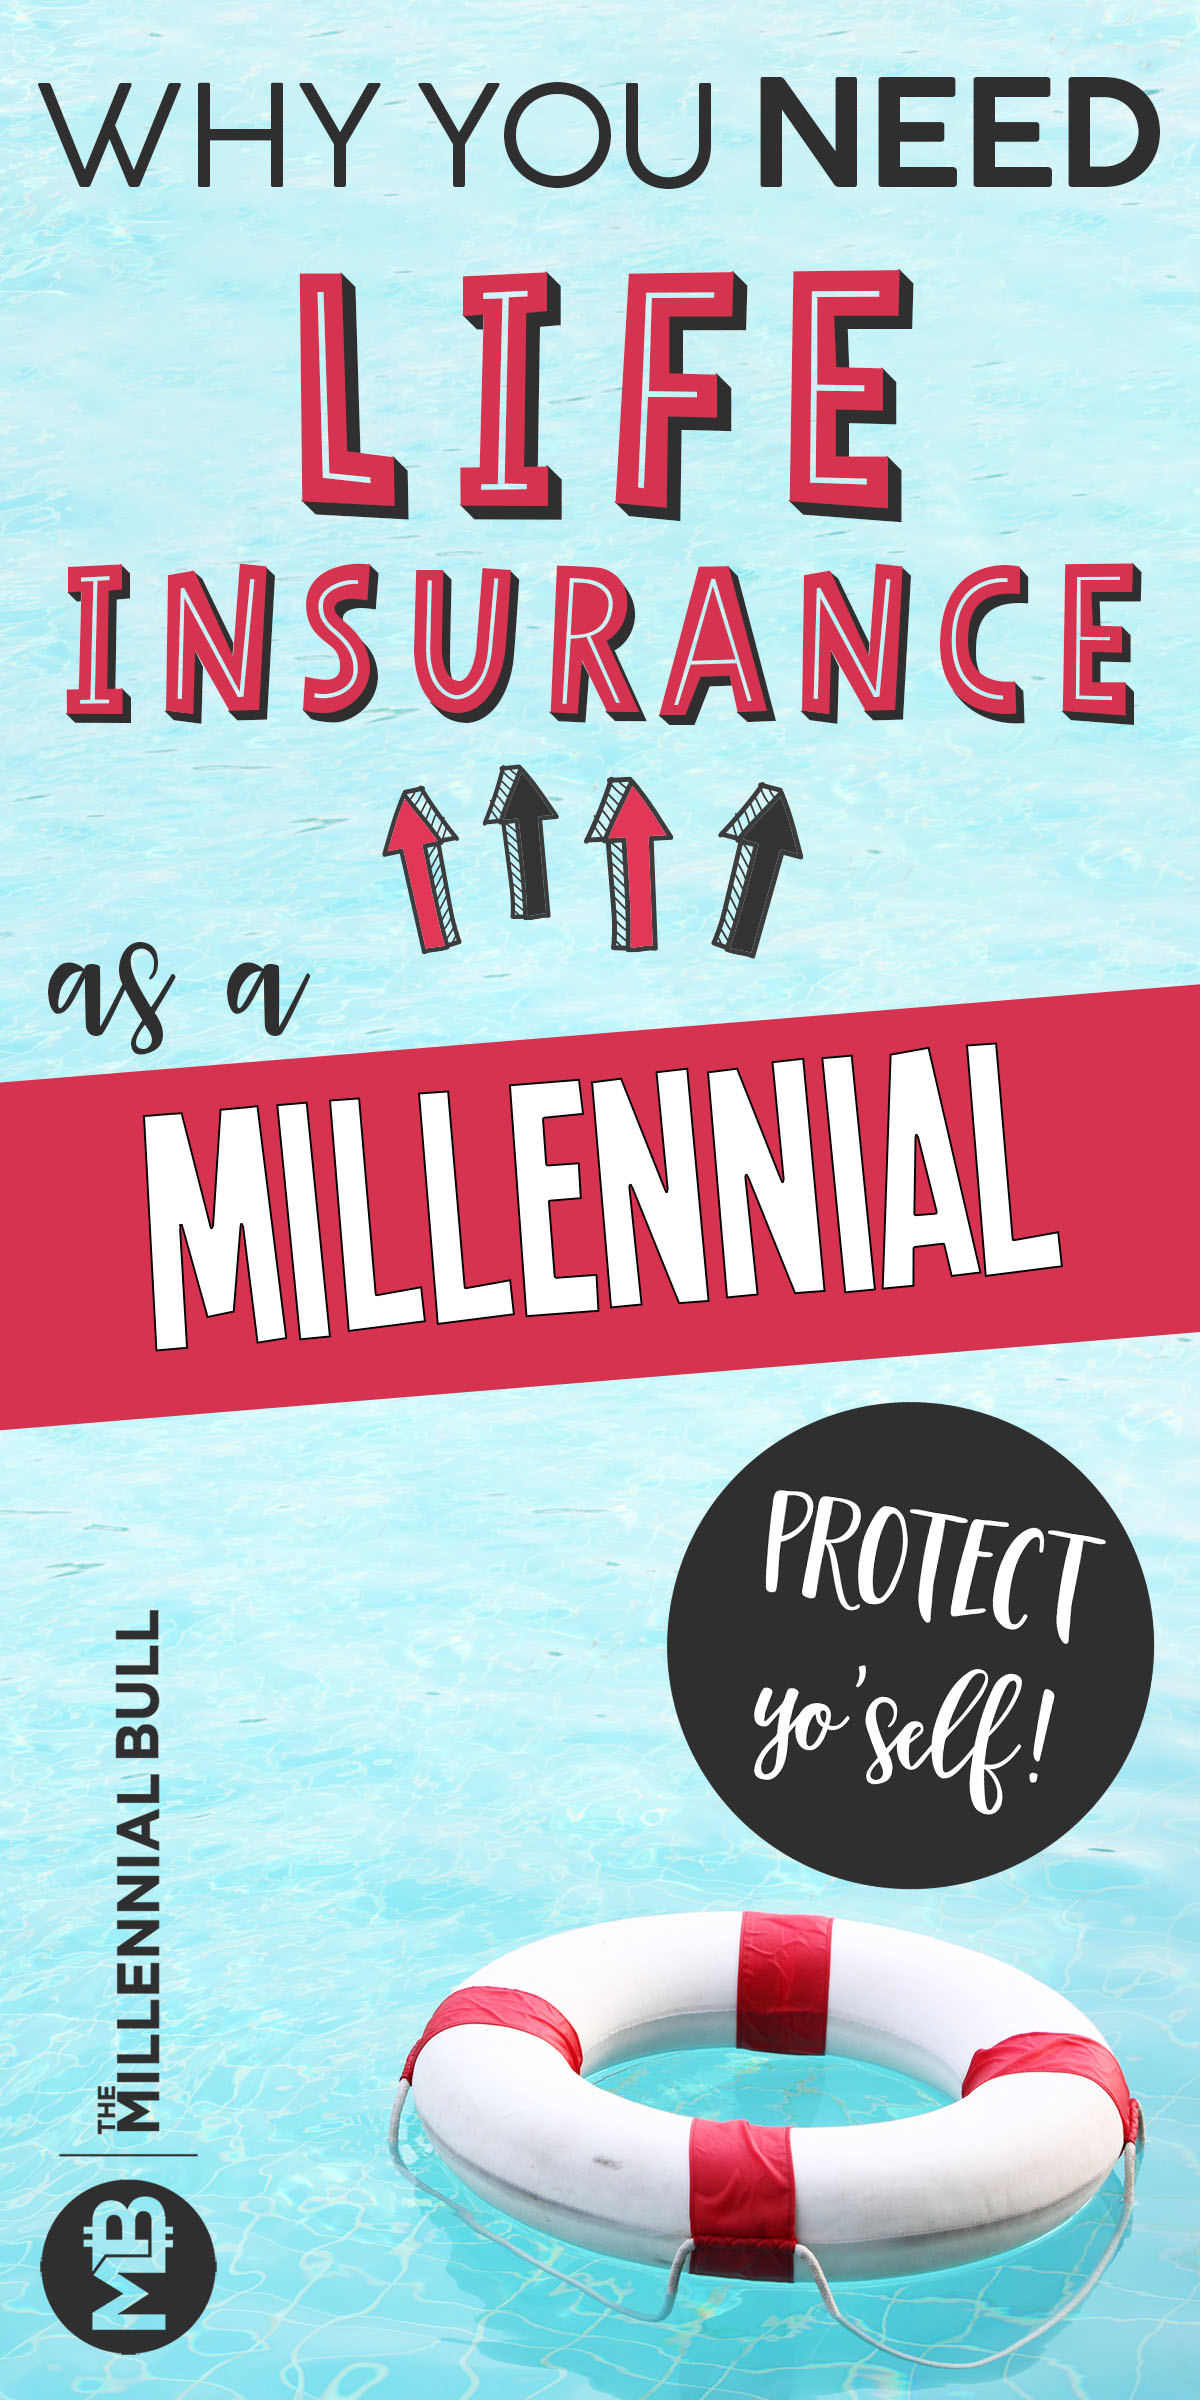 the importance of life insurance as a millennial - The Importance of Life Insurance as a Millennial